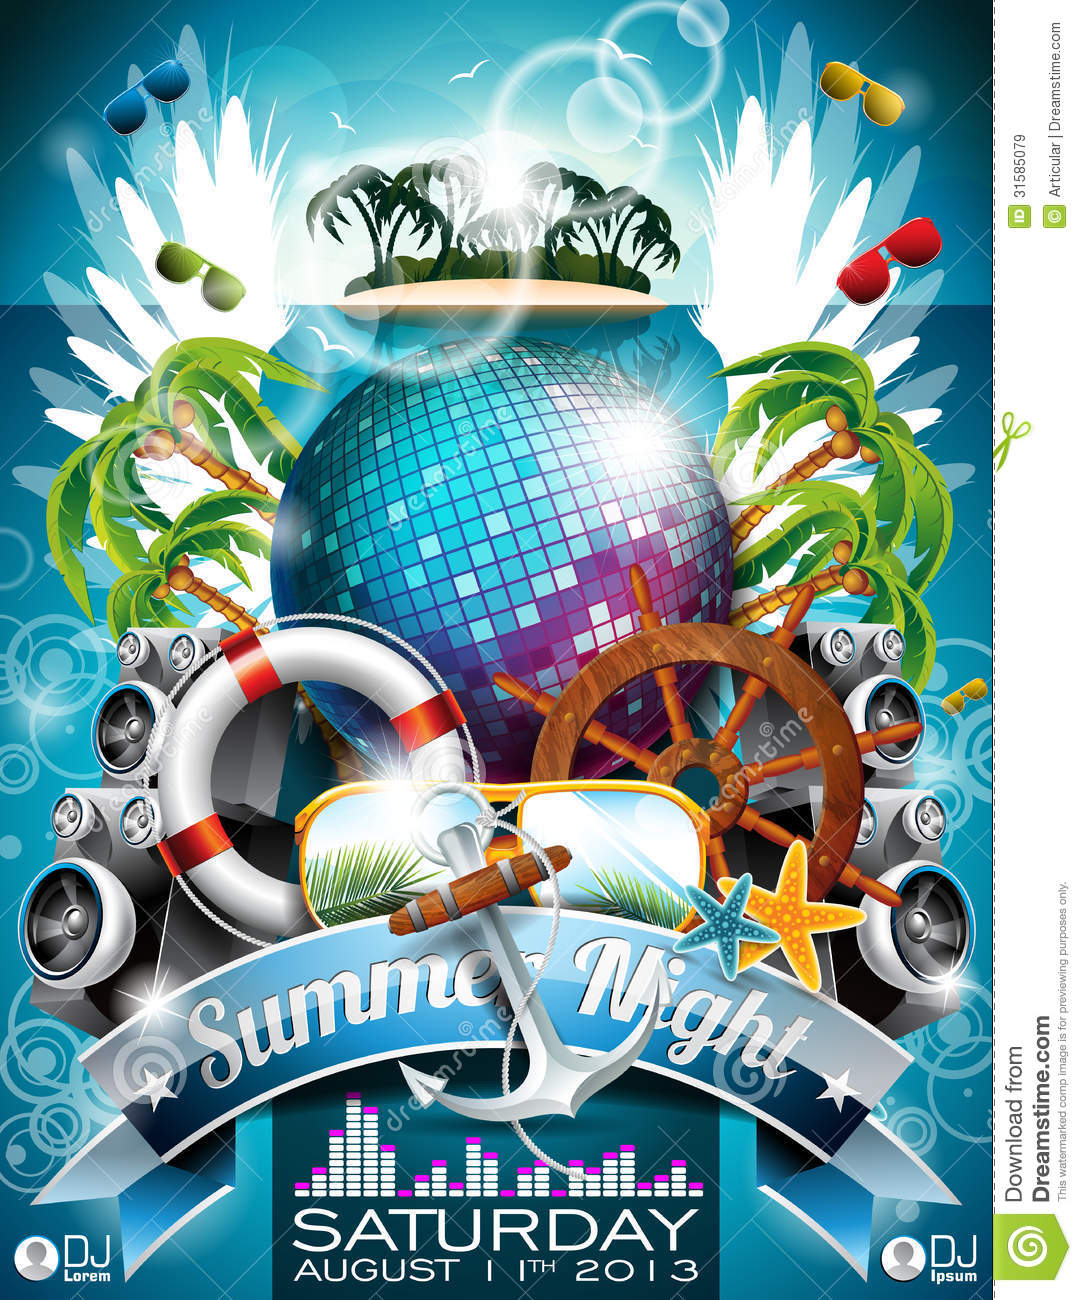 7 Best Philadelphia Flyers Themed Party Images On: Vector Summer Beach Party Flyer Design With Disco Ball